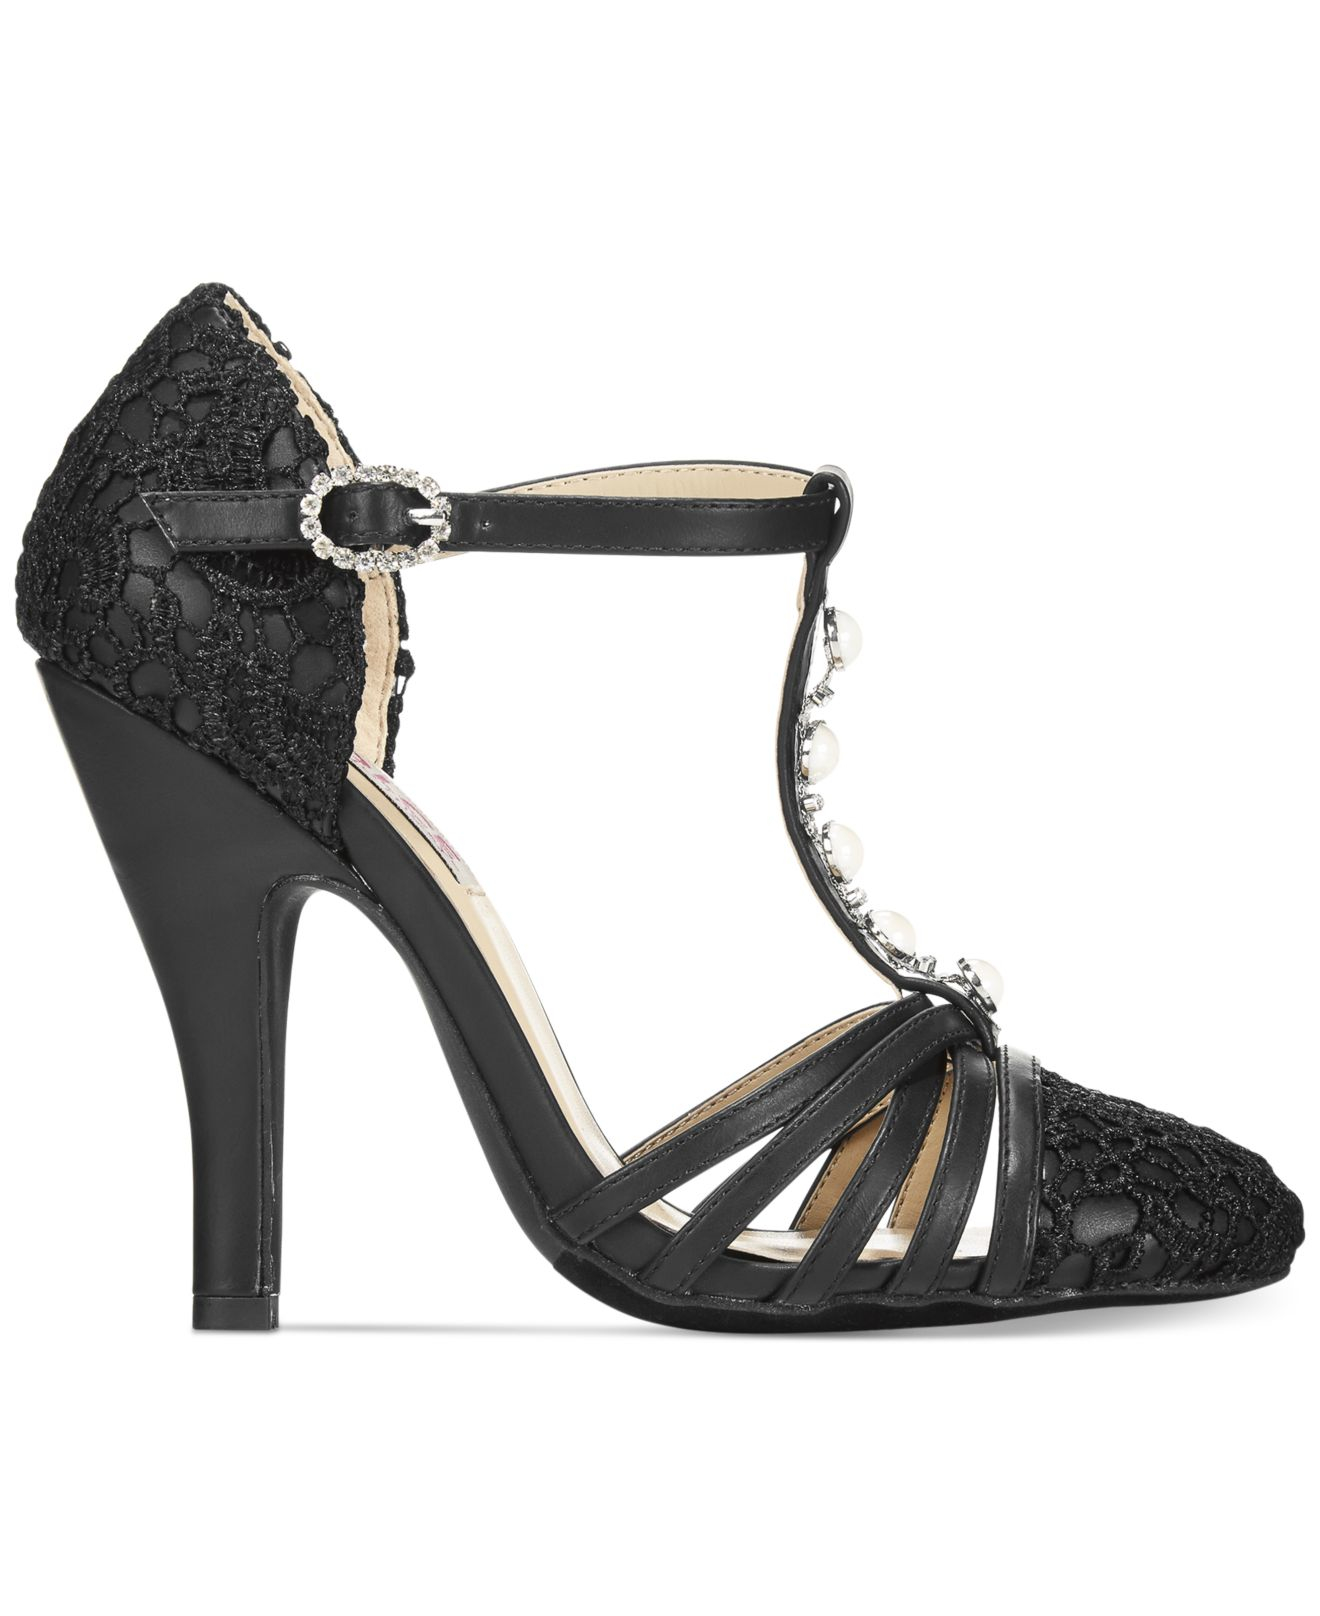 mojo moxy dolce by bunny t strap pumps in black lyst. Black Bedroom Furniture Sets. Home Design Ideas